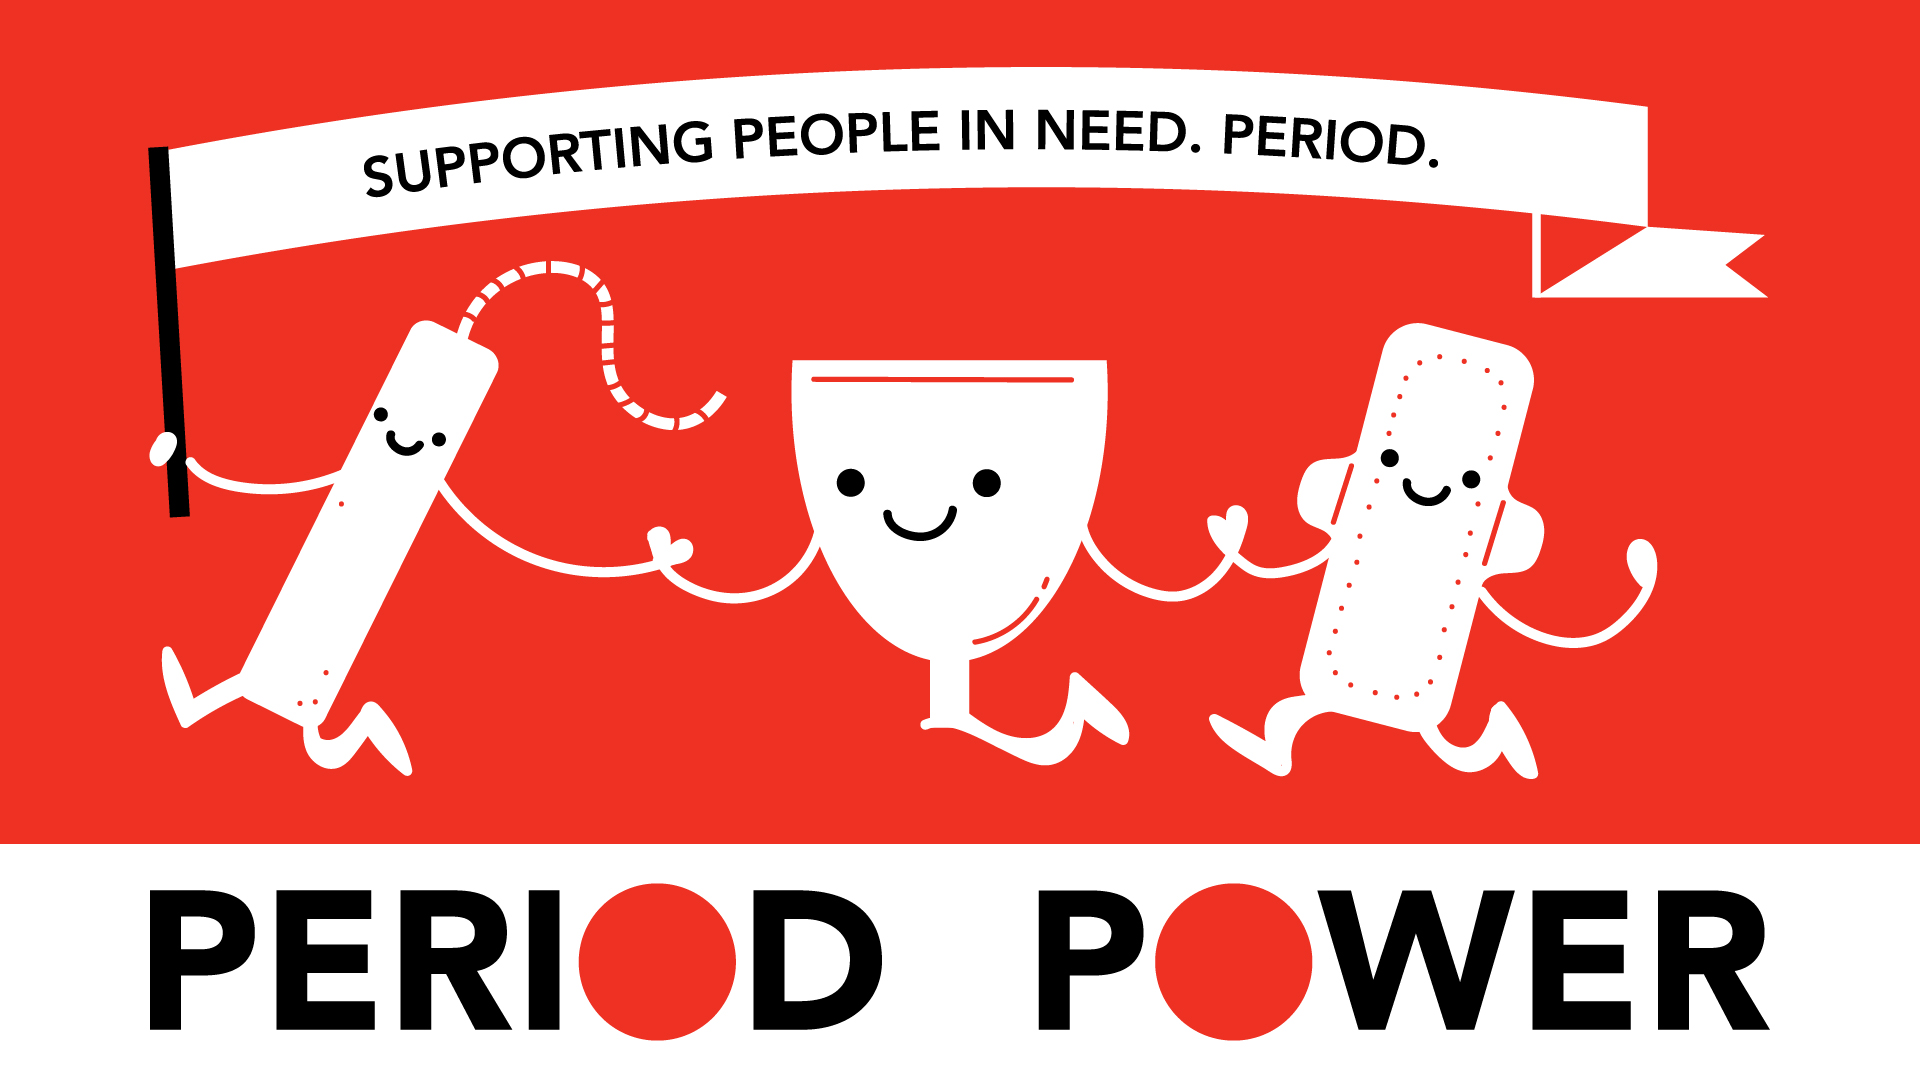 Period Power Collection Drive